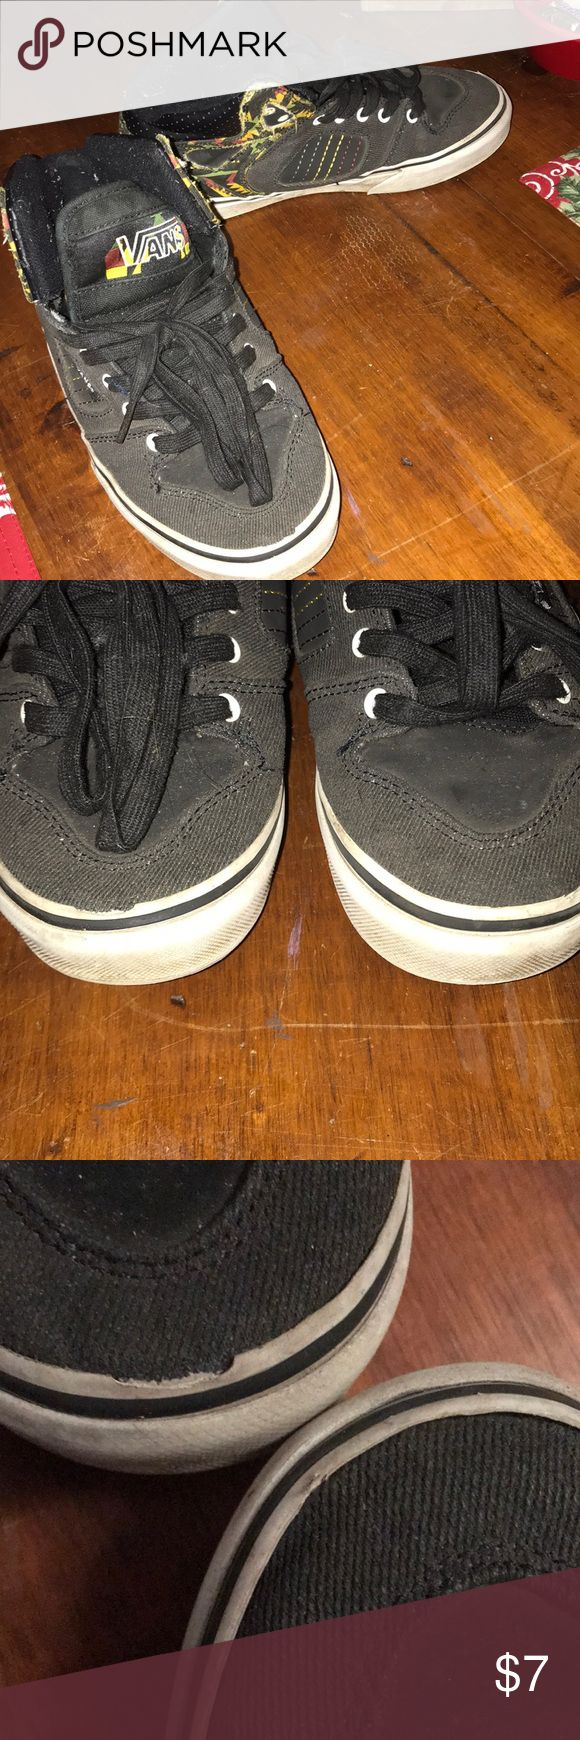 Vans Rasta Aztec hi top skate shoe Treads barely worn but dirty and vinyl torn at toes (see pix). Size 4 boys Vans Shoes